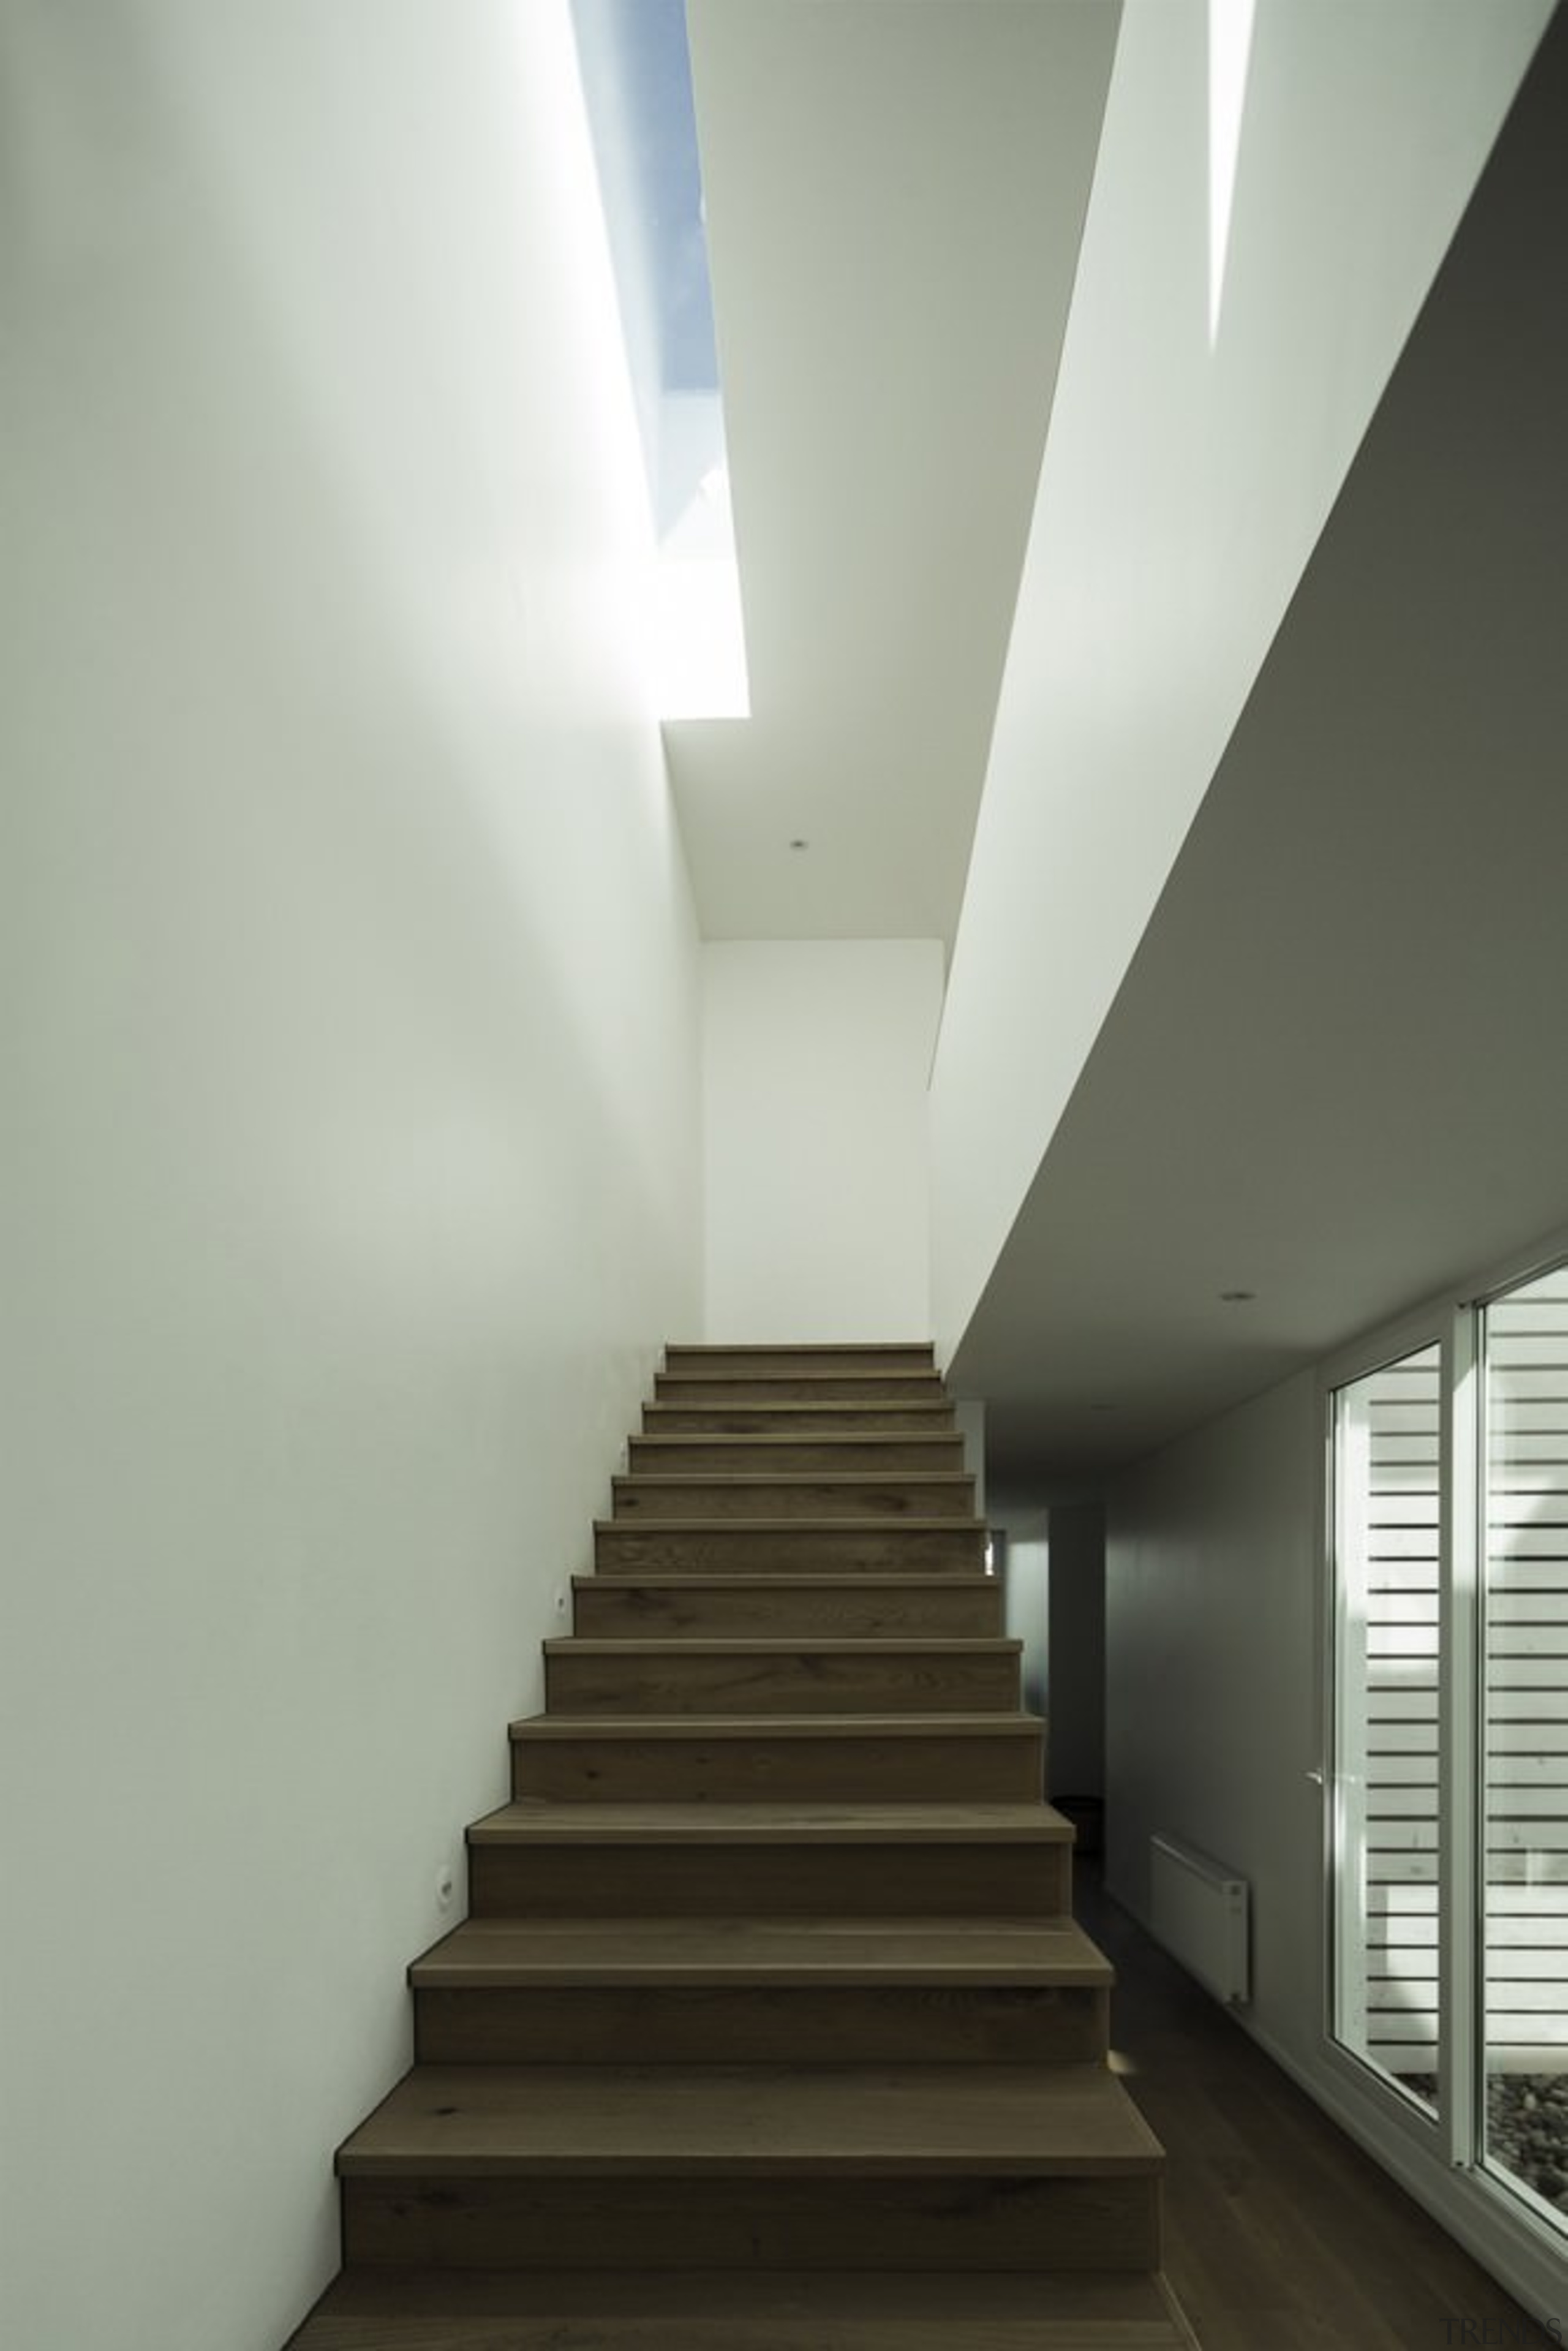 A skylight runs parallel to the stairway, illuminating architecture, ceiling, daylighting, handrail, house, interior design, stairs, gray, black